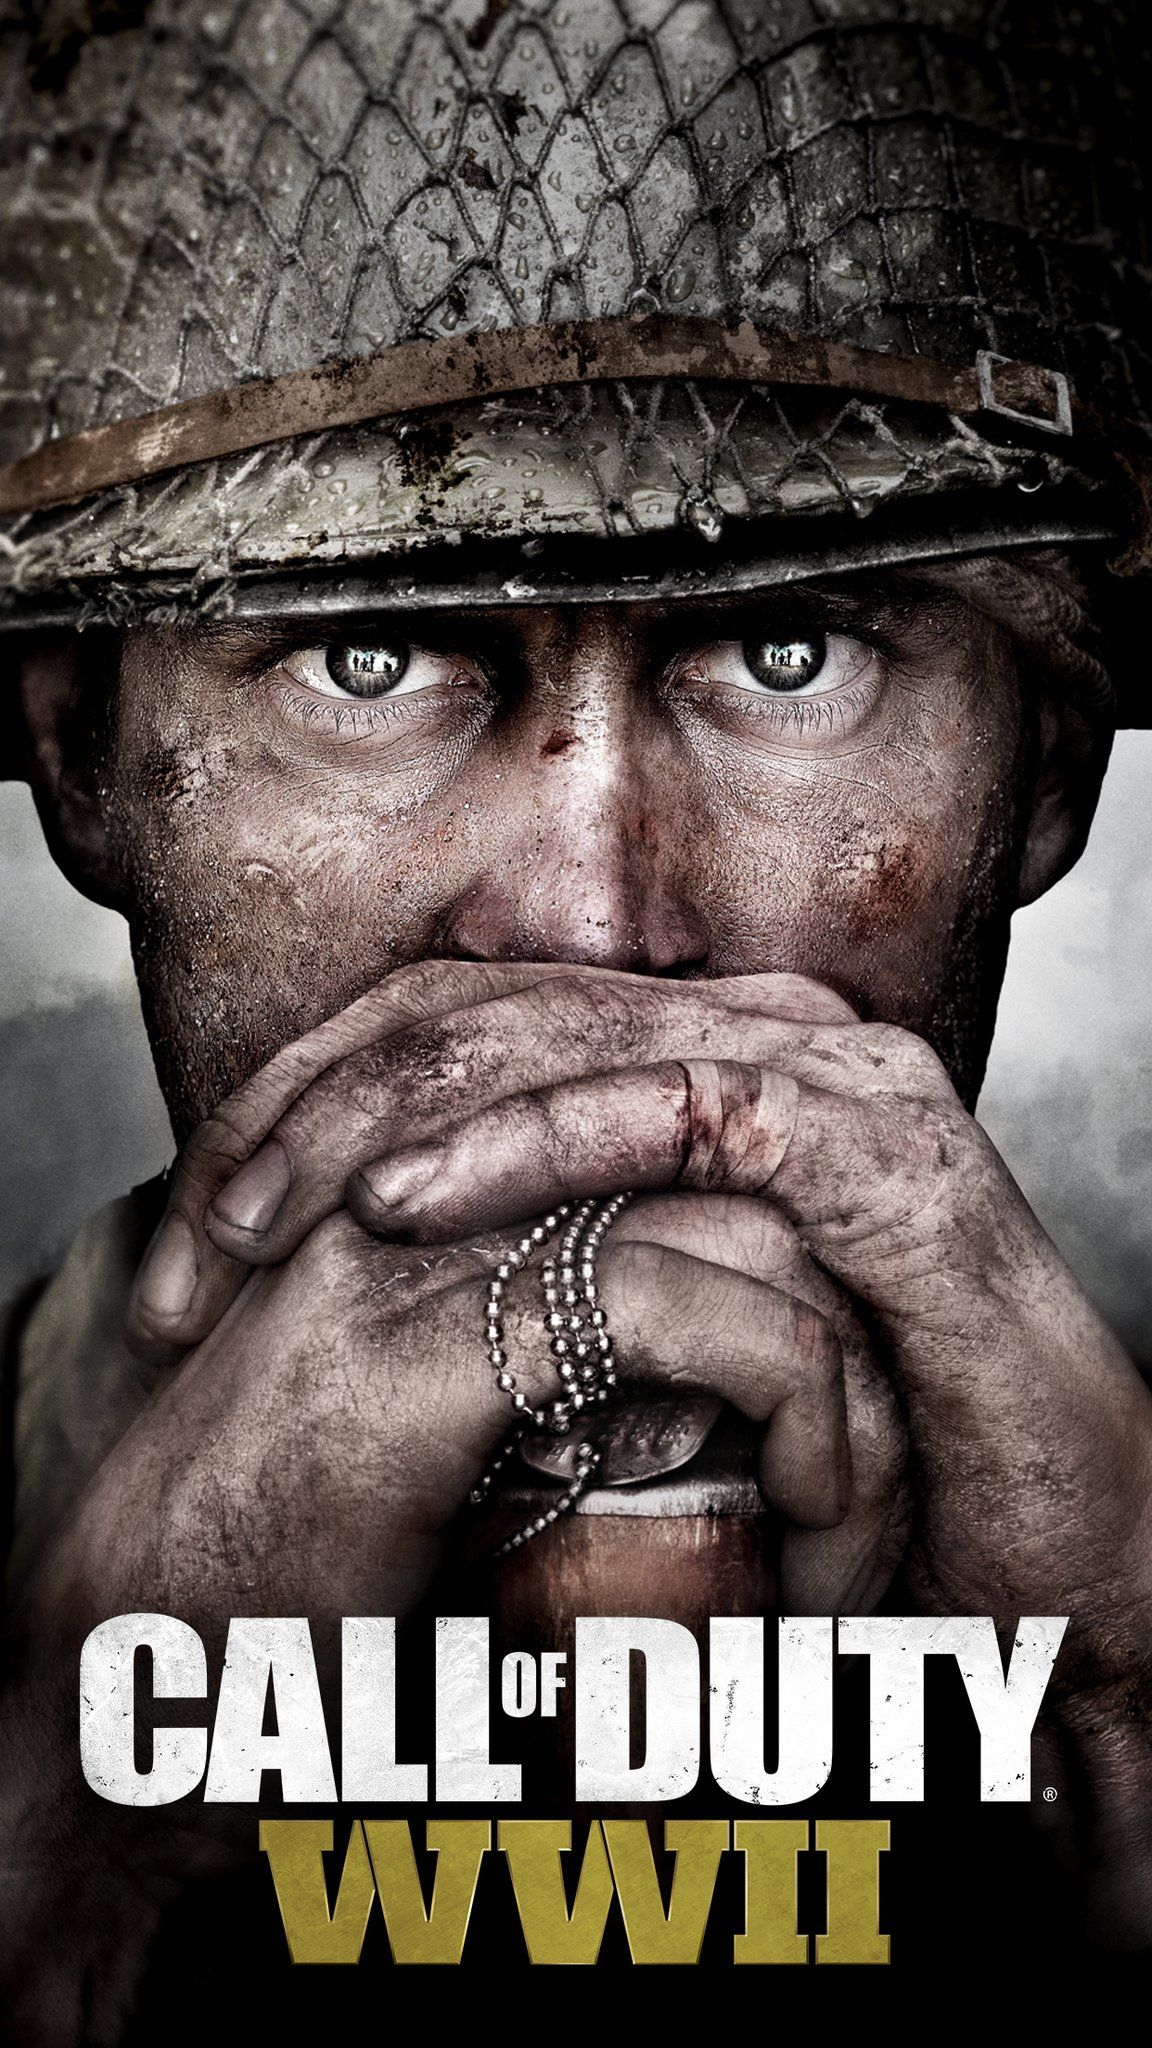 Call of Duty WW2 Wallpapers shared by Sony